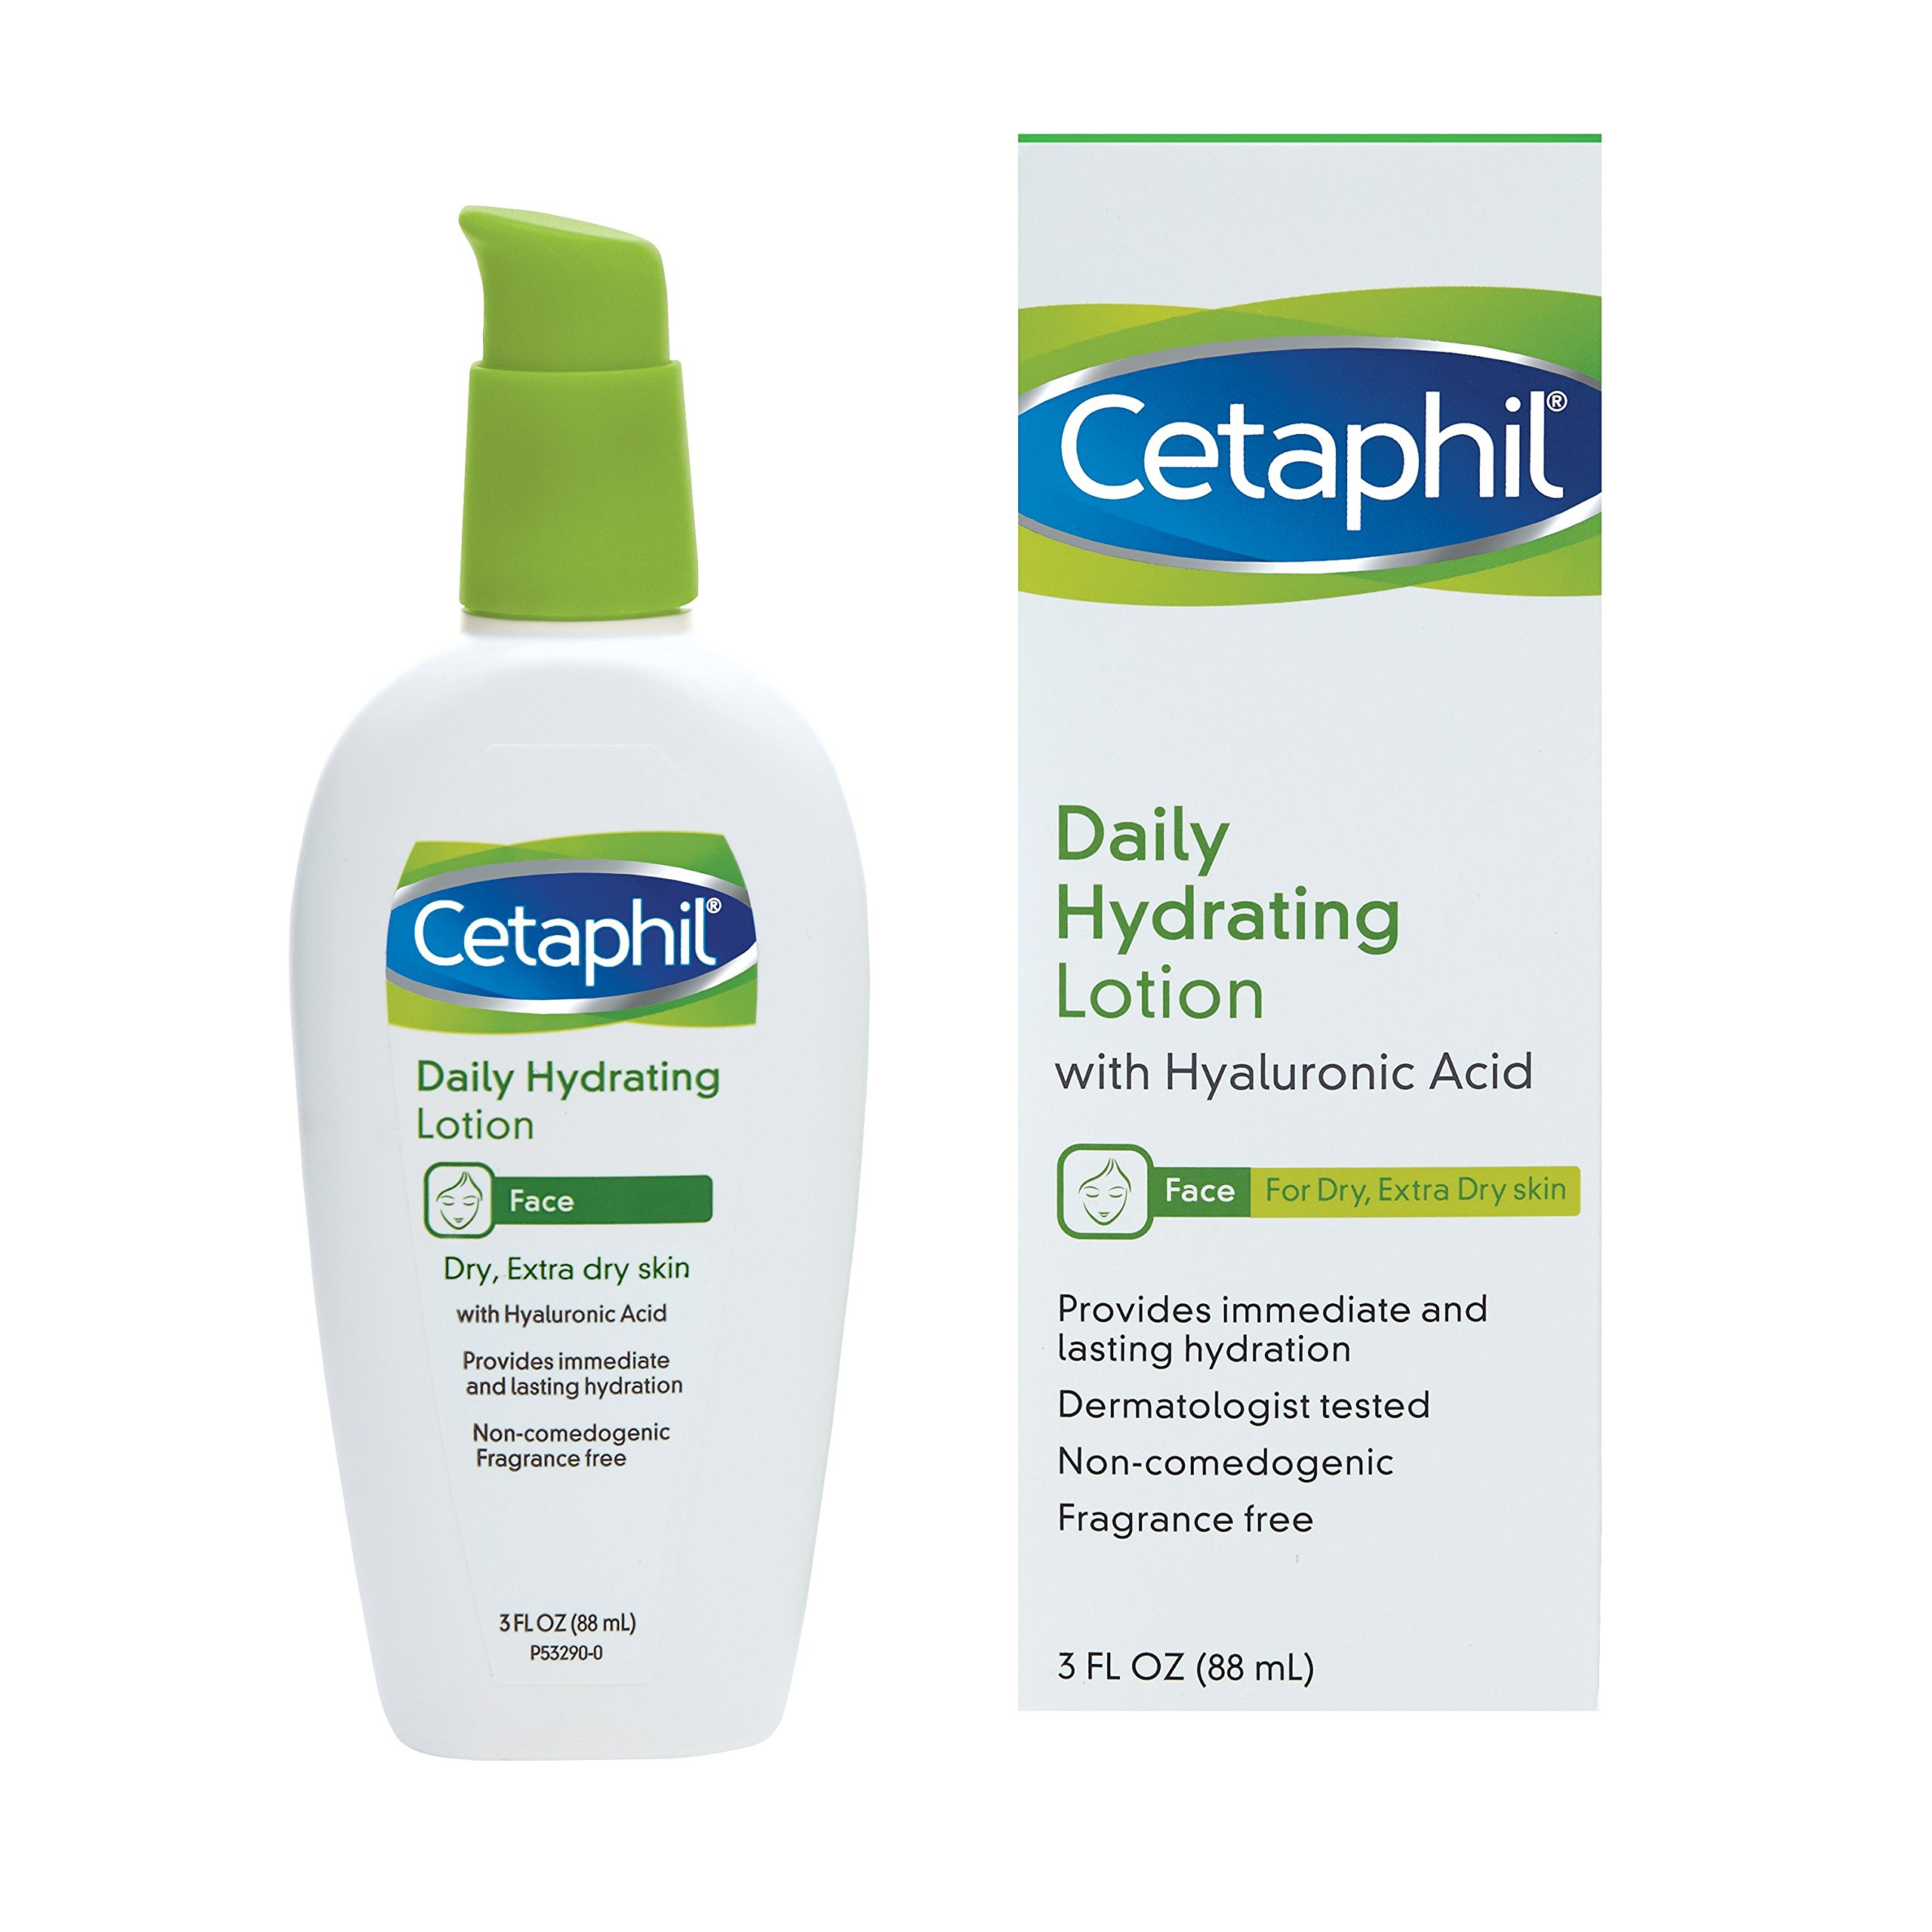 Cetaphil Daily Hydrating Lotion with Hyaluronic Acid, 3.0 Fluid Ounce by Cetaphil